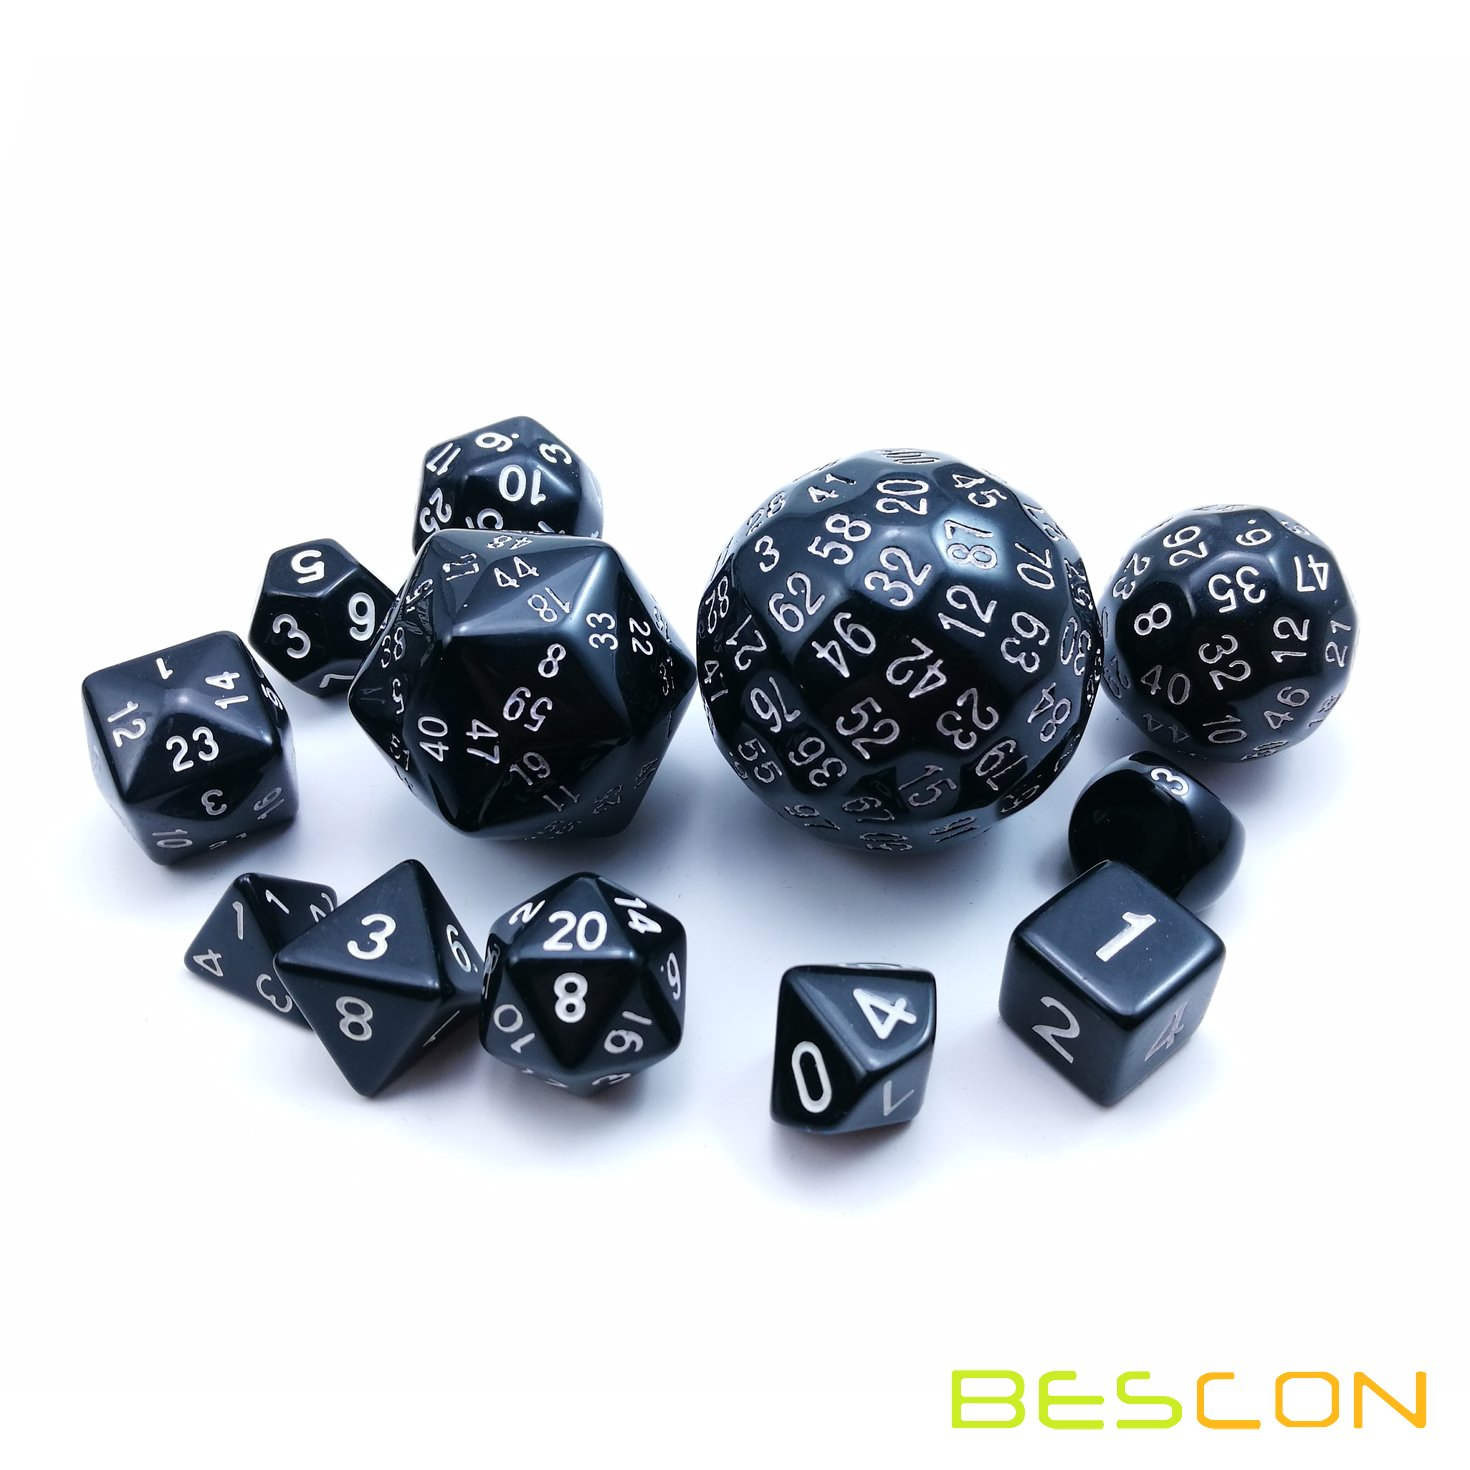 Bescon Complete Polyhedral Dice Set 13pcs D3-D100, 100 Sides Dice Set Opaque Black by BESCON DICE (Image #3)